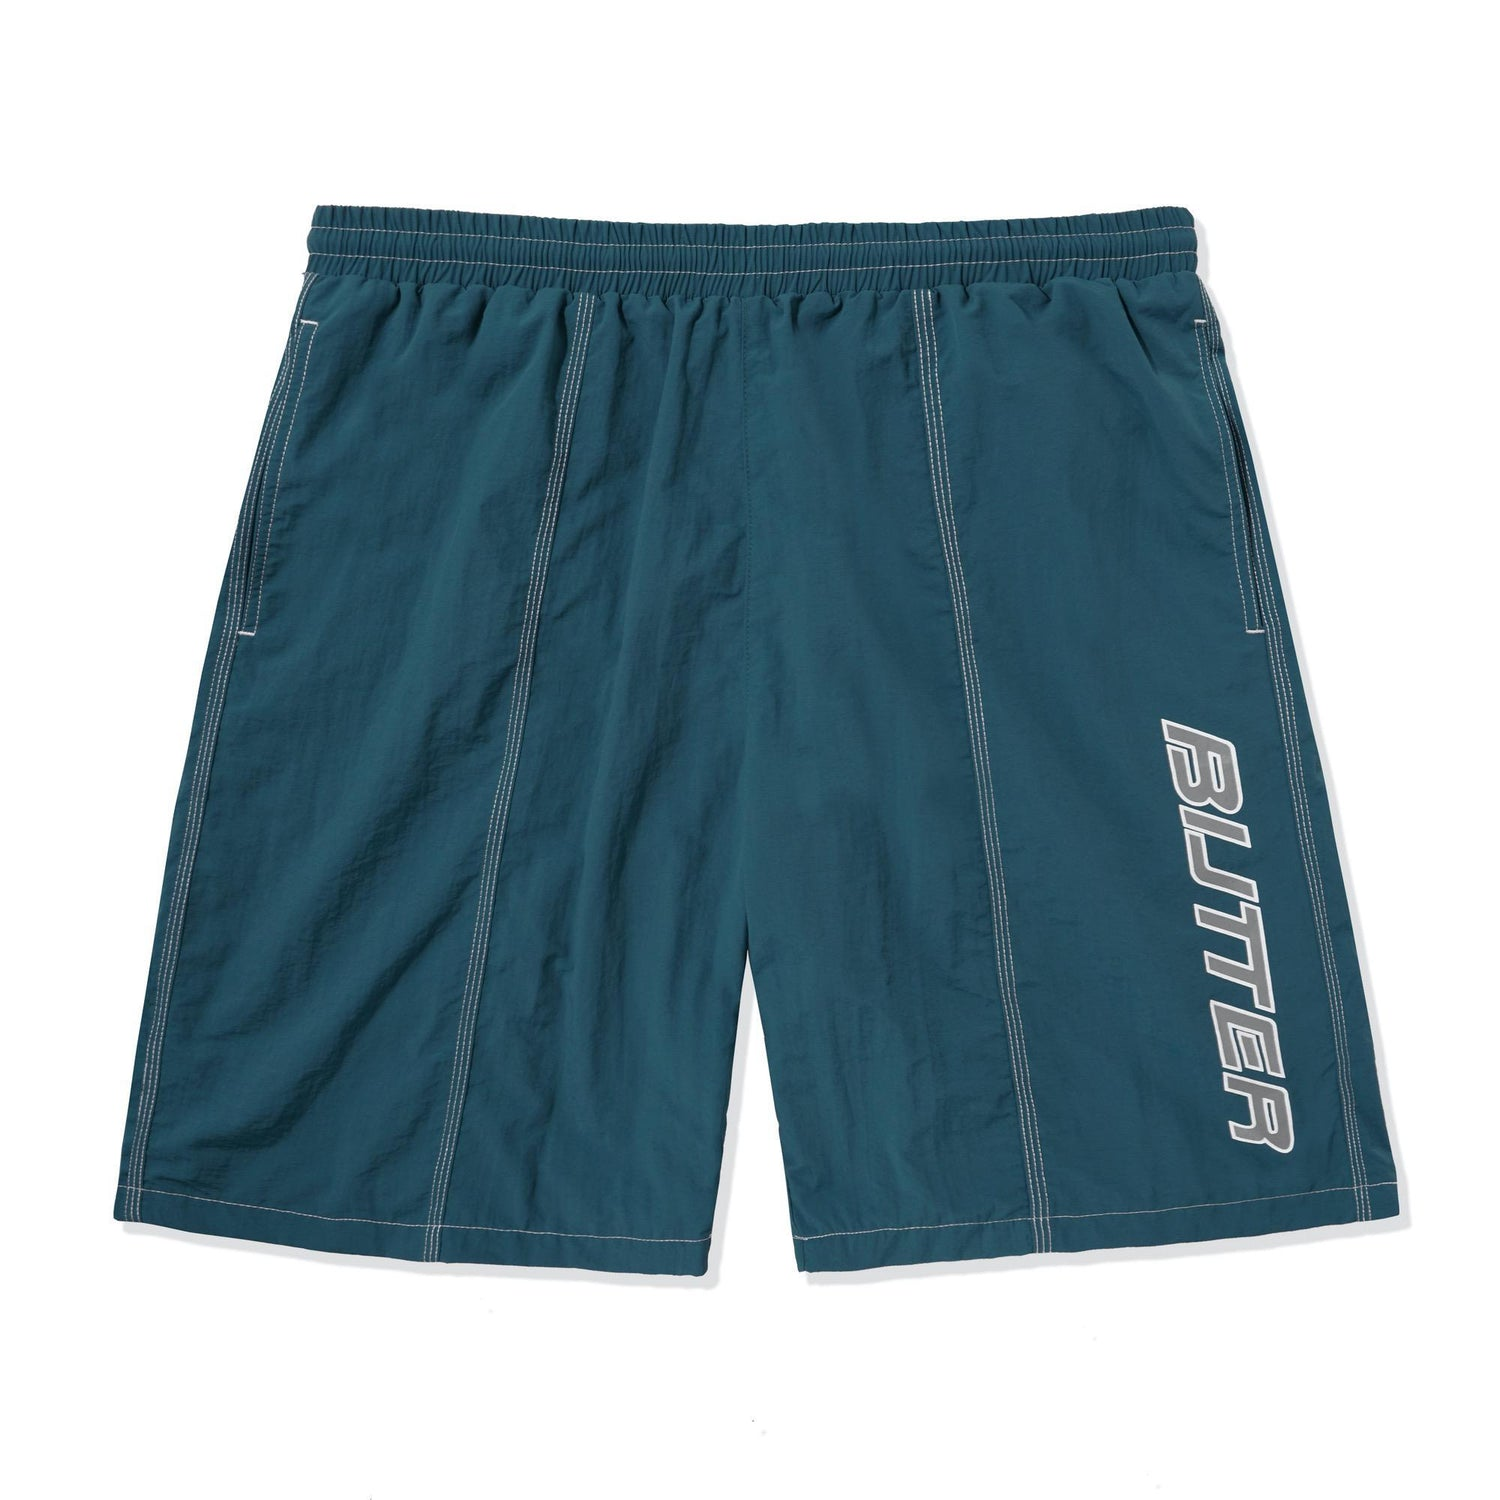 International Shorts, Dark Teal